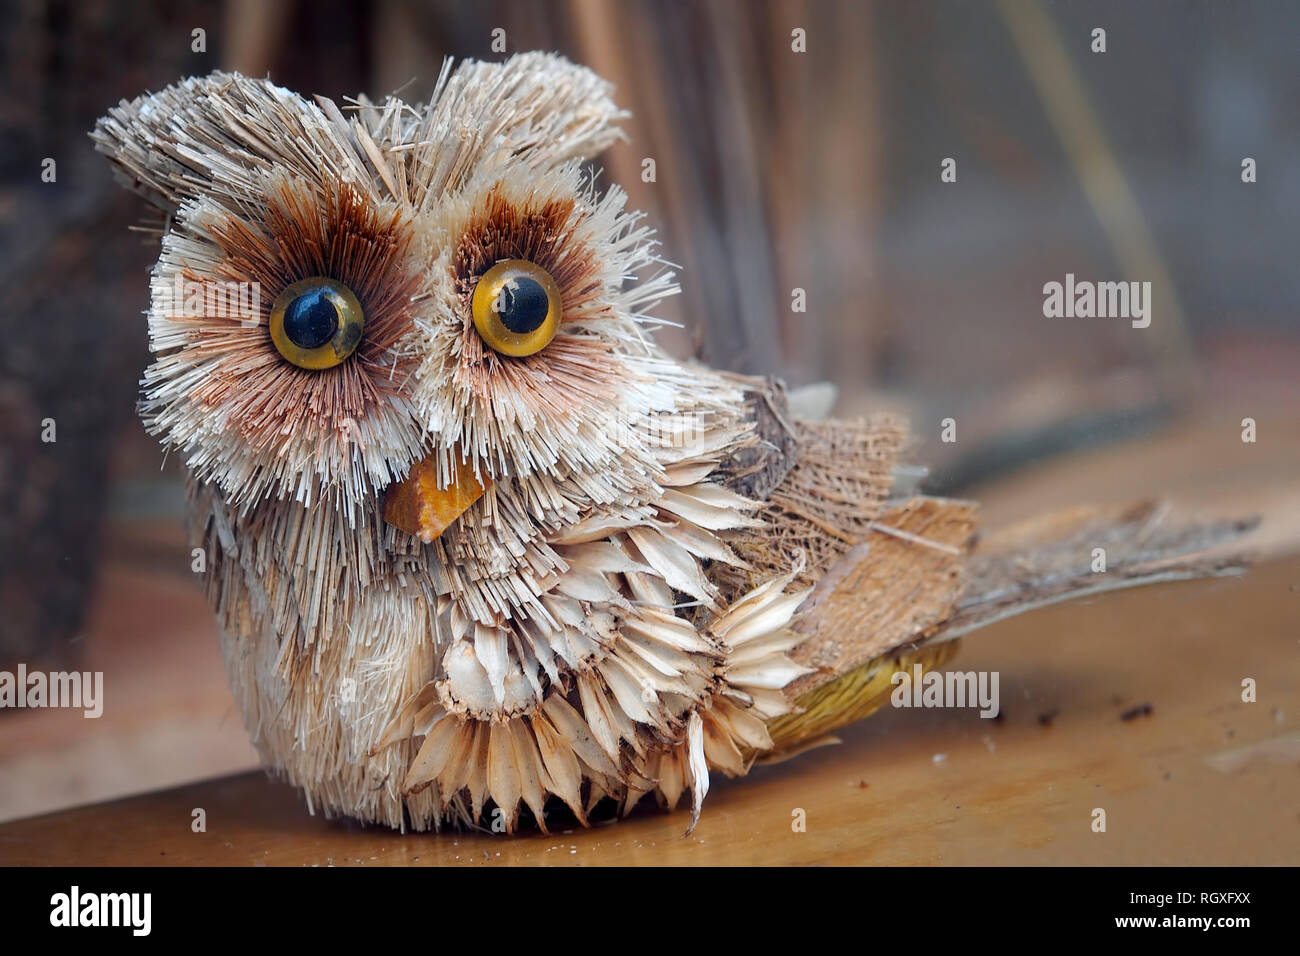 Artwork. Wooden owl with very curious eyes. Stock Photo